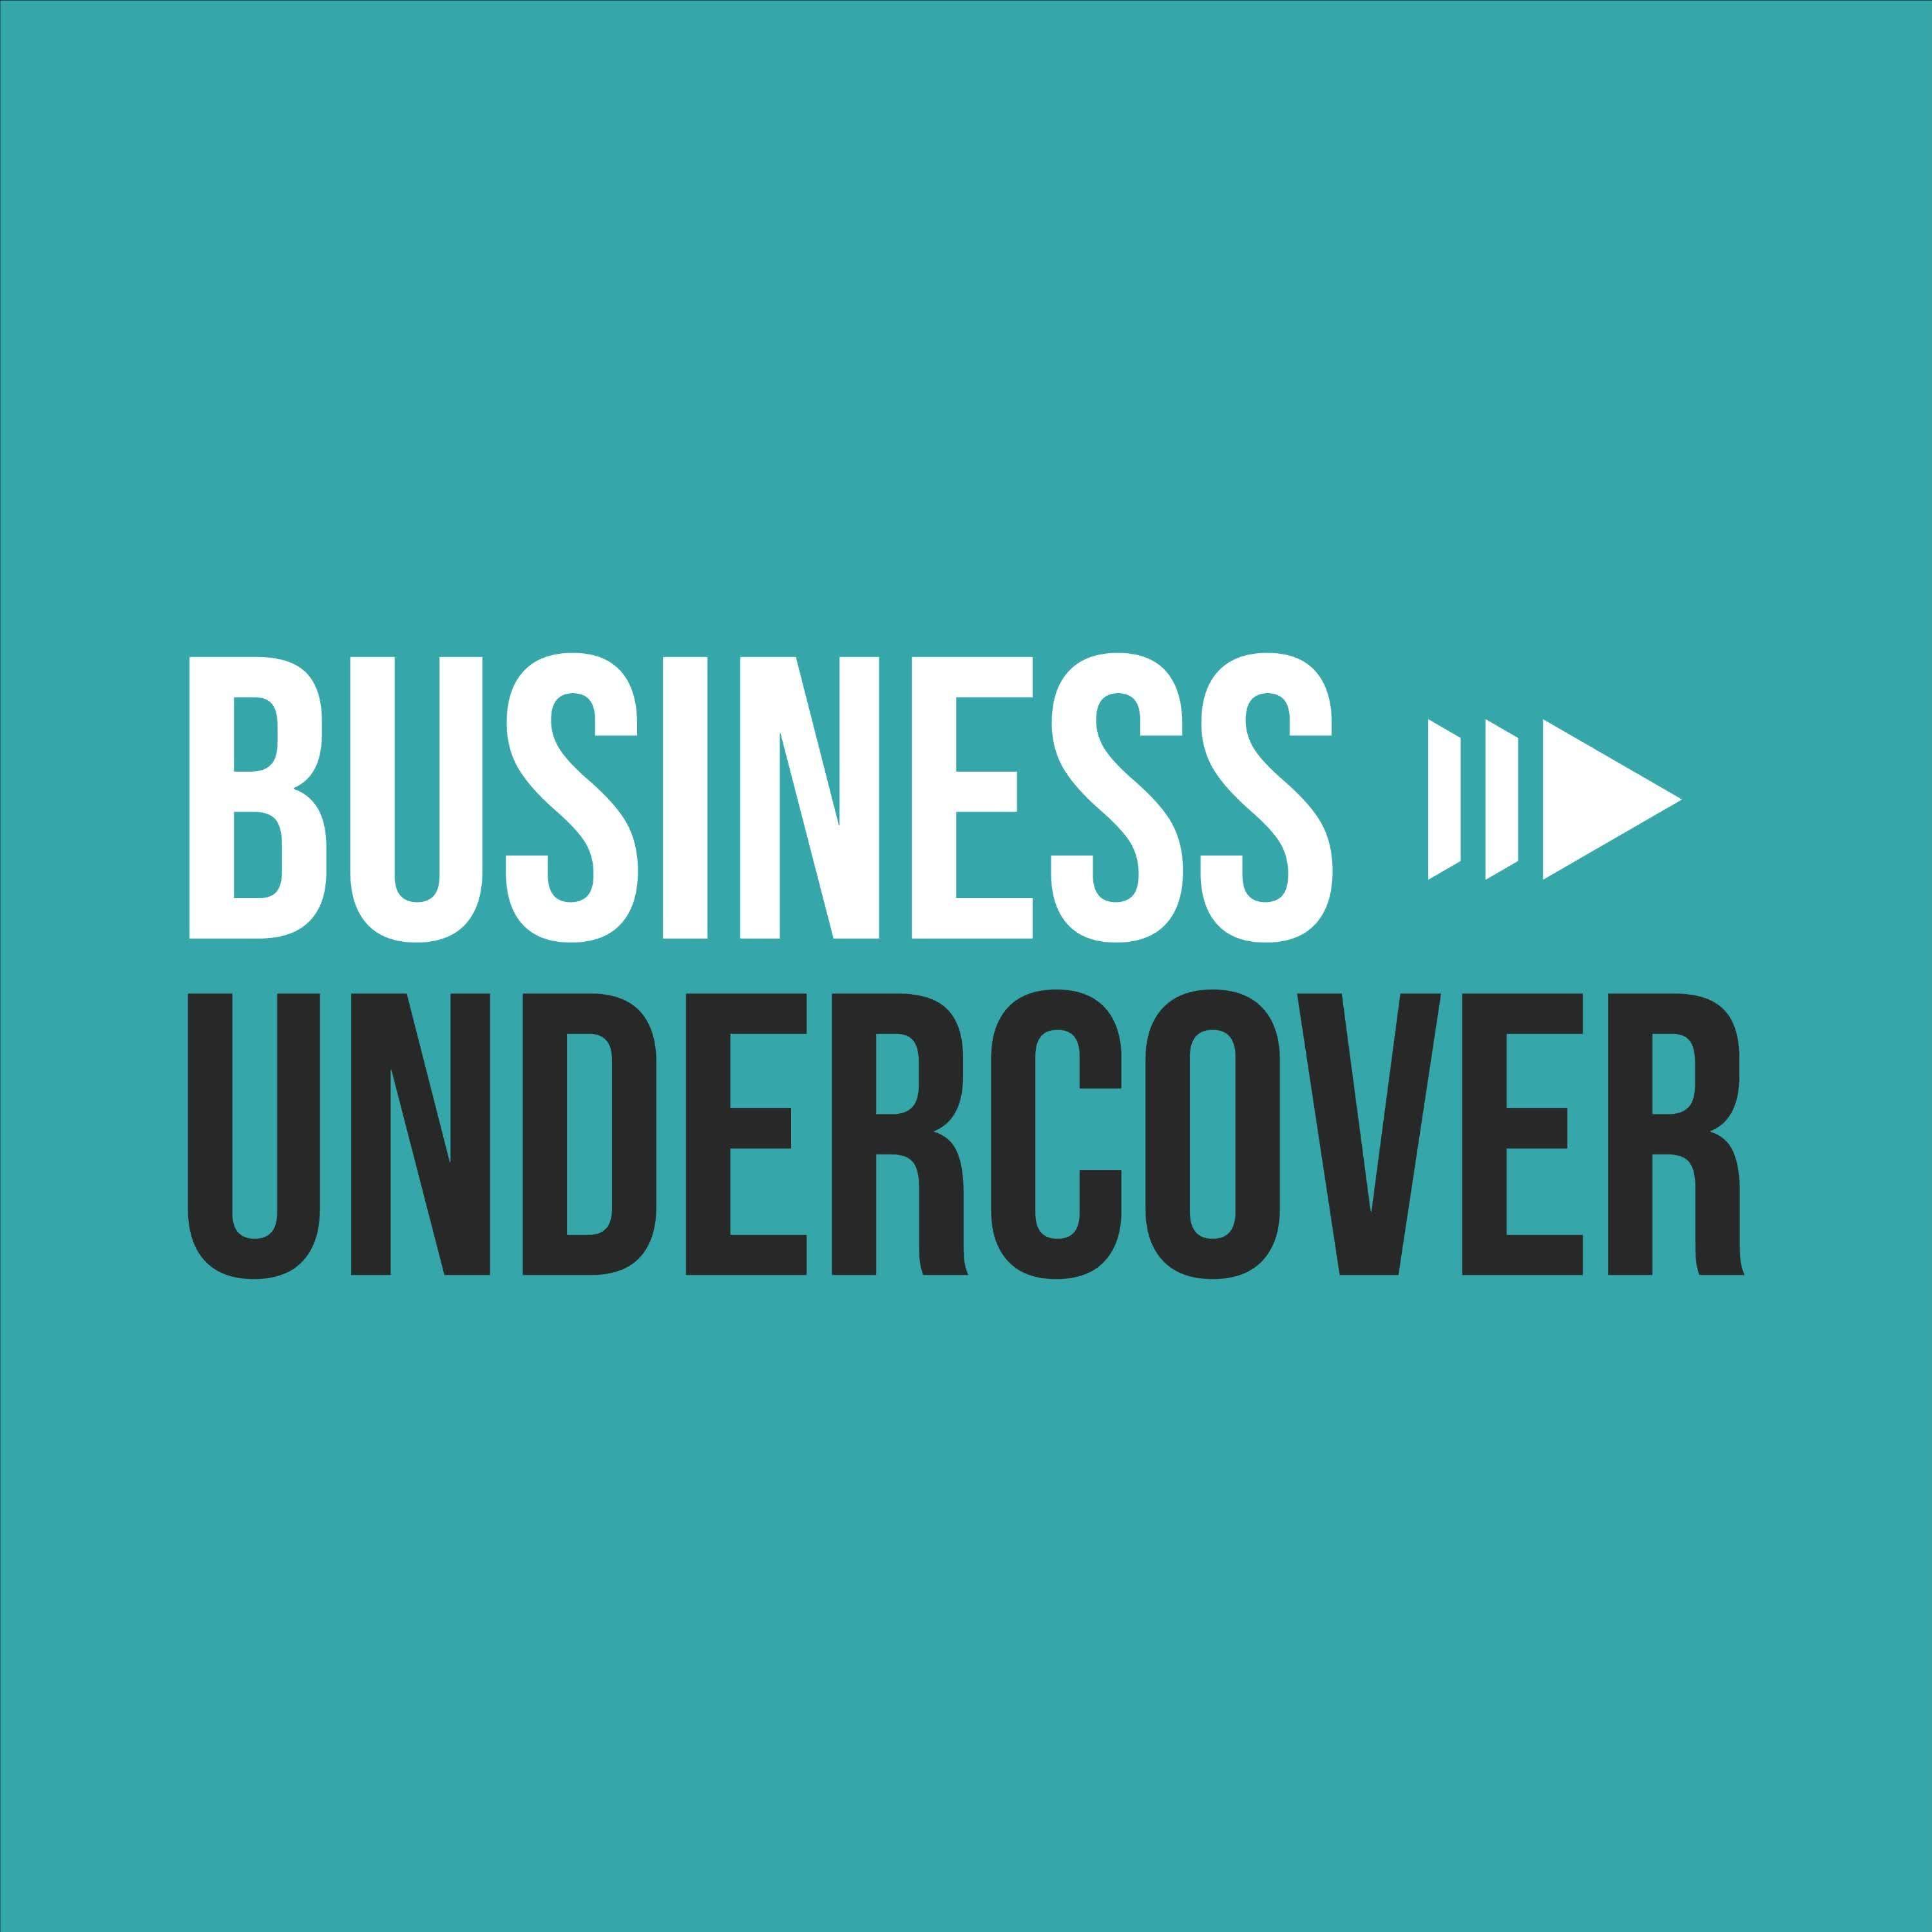 Business Undercover